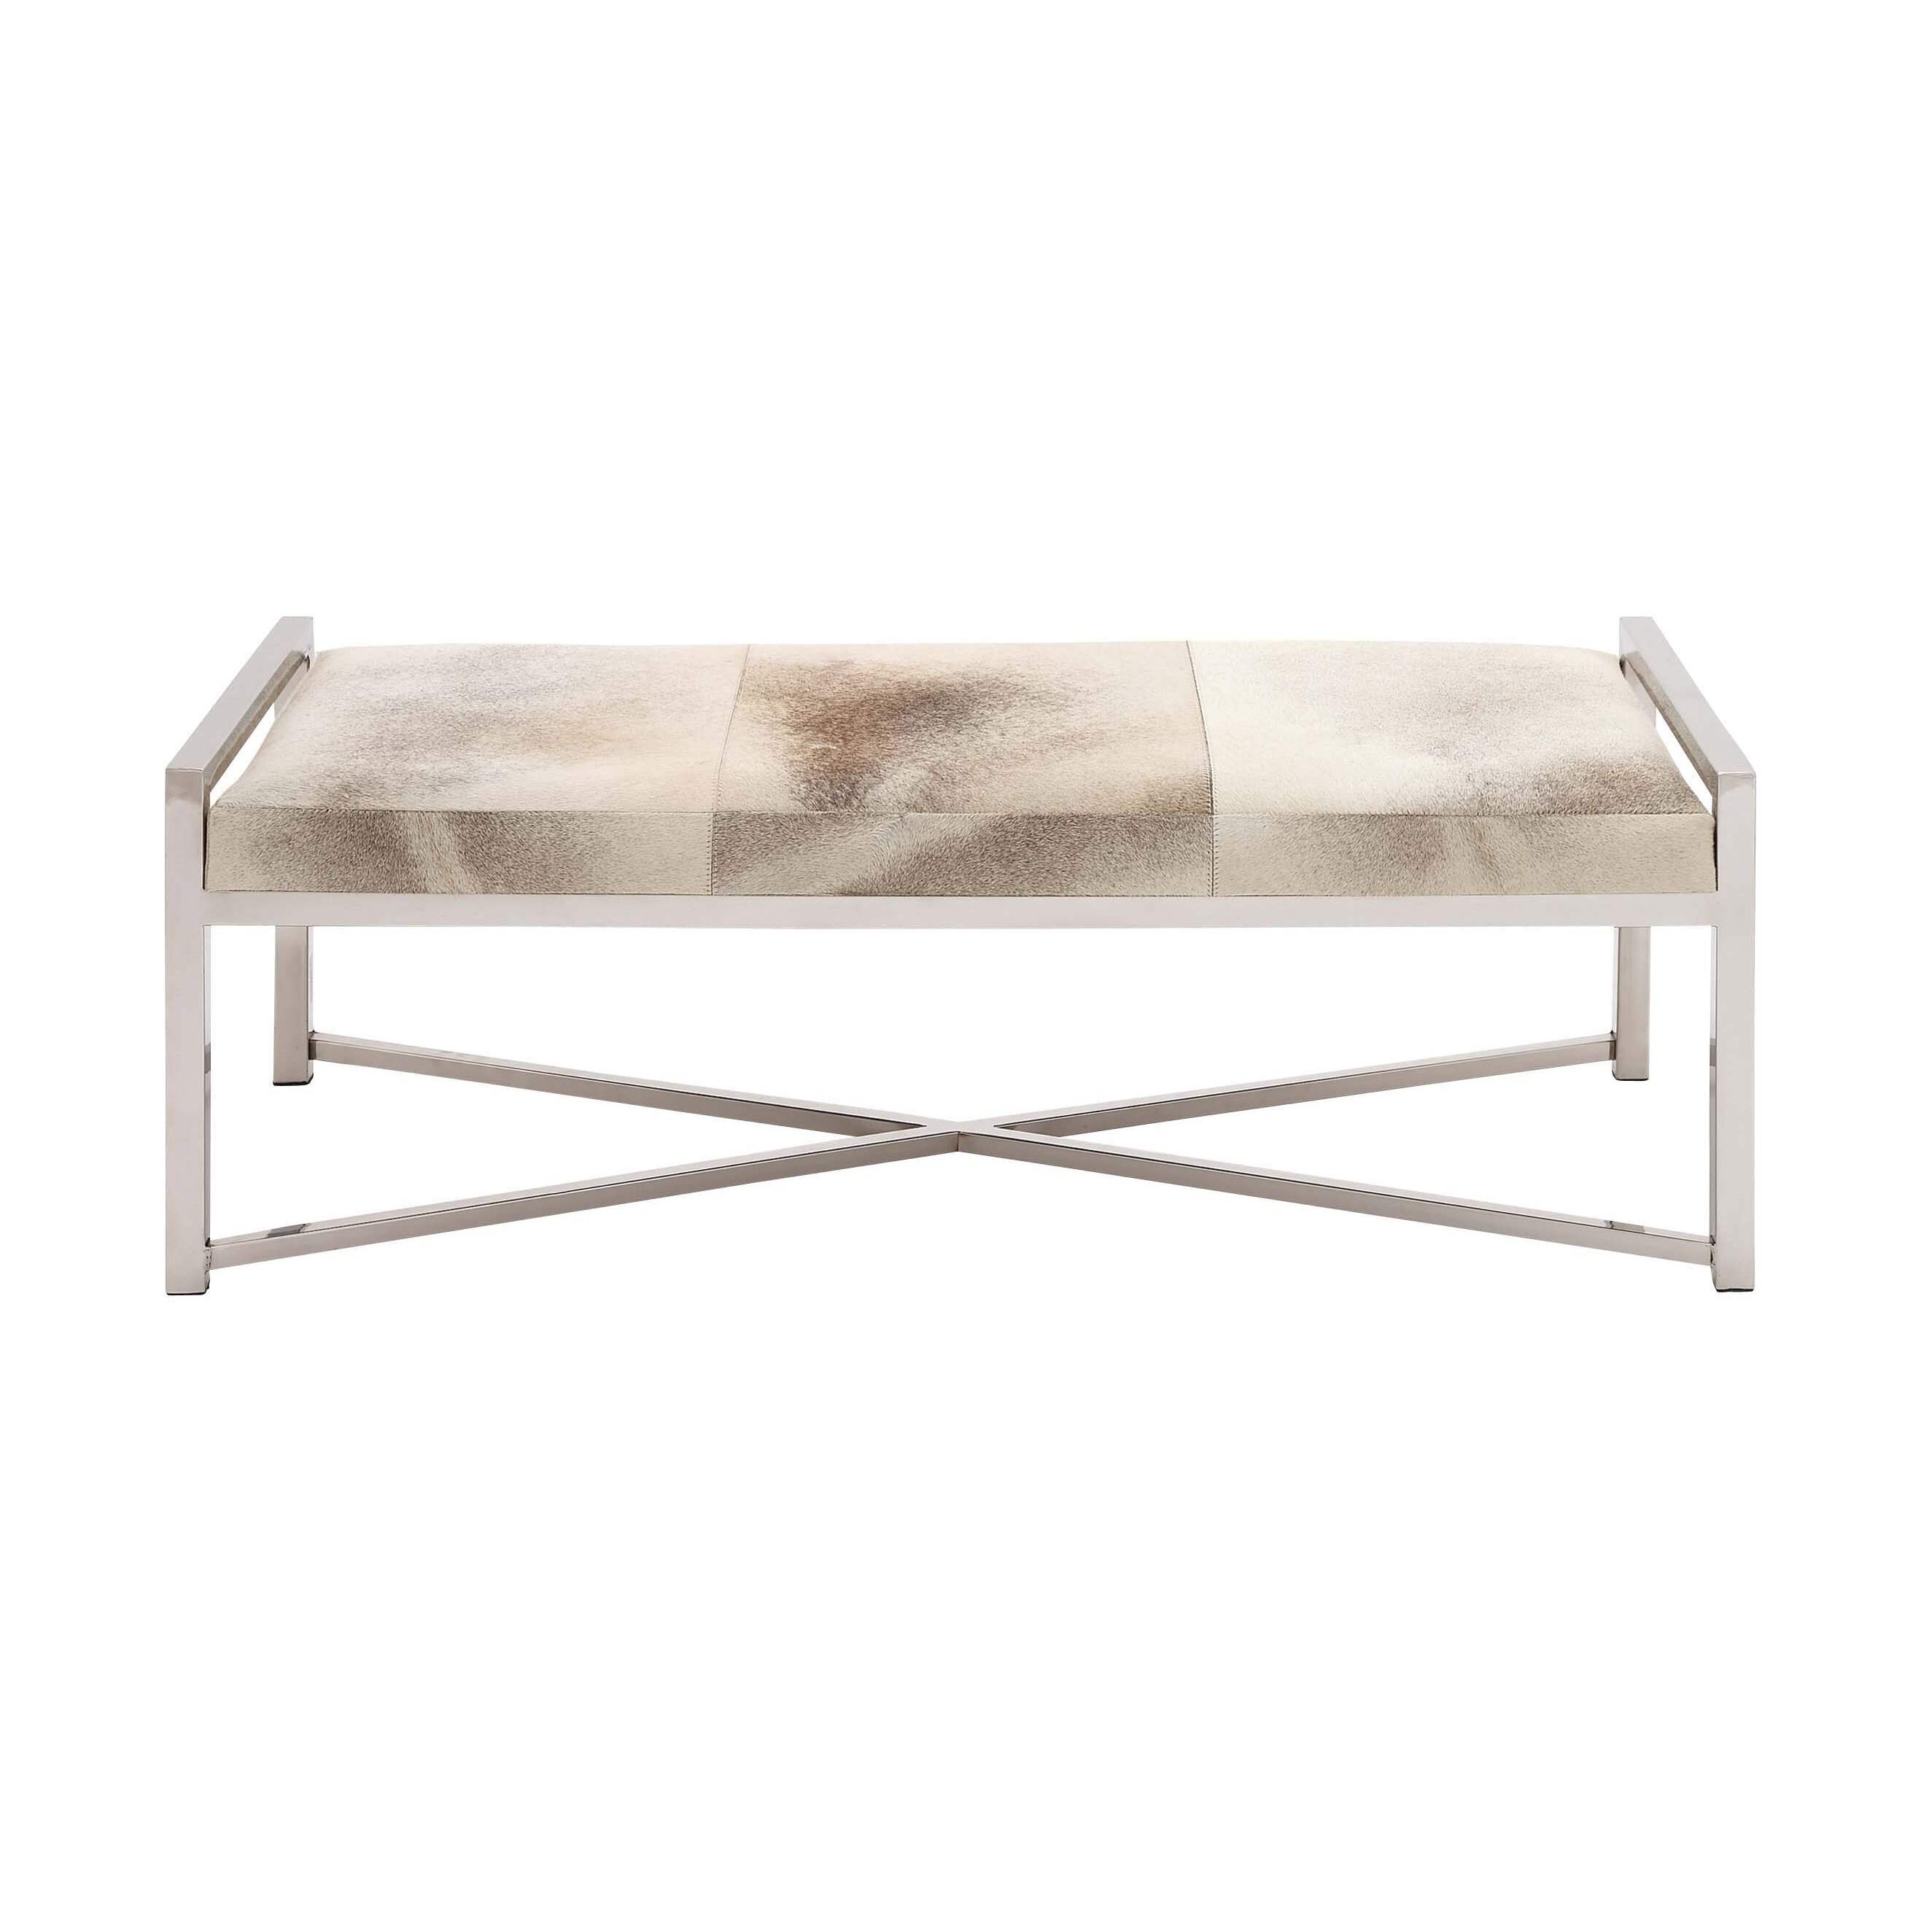 Leather Bedroom Bench Woodland Imports The Heartthrob Metal And Leather Bedroom Bench